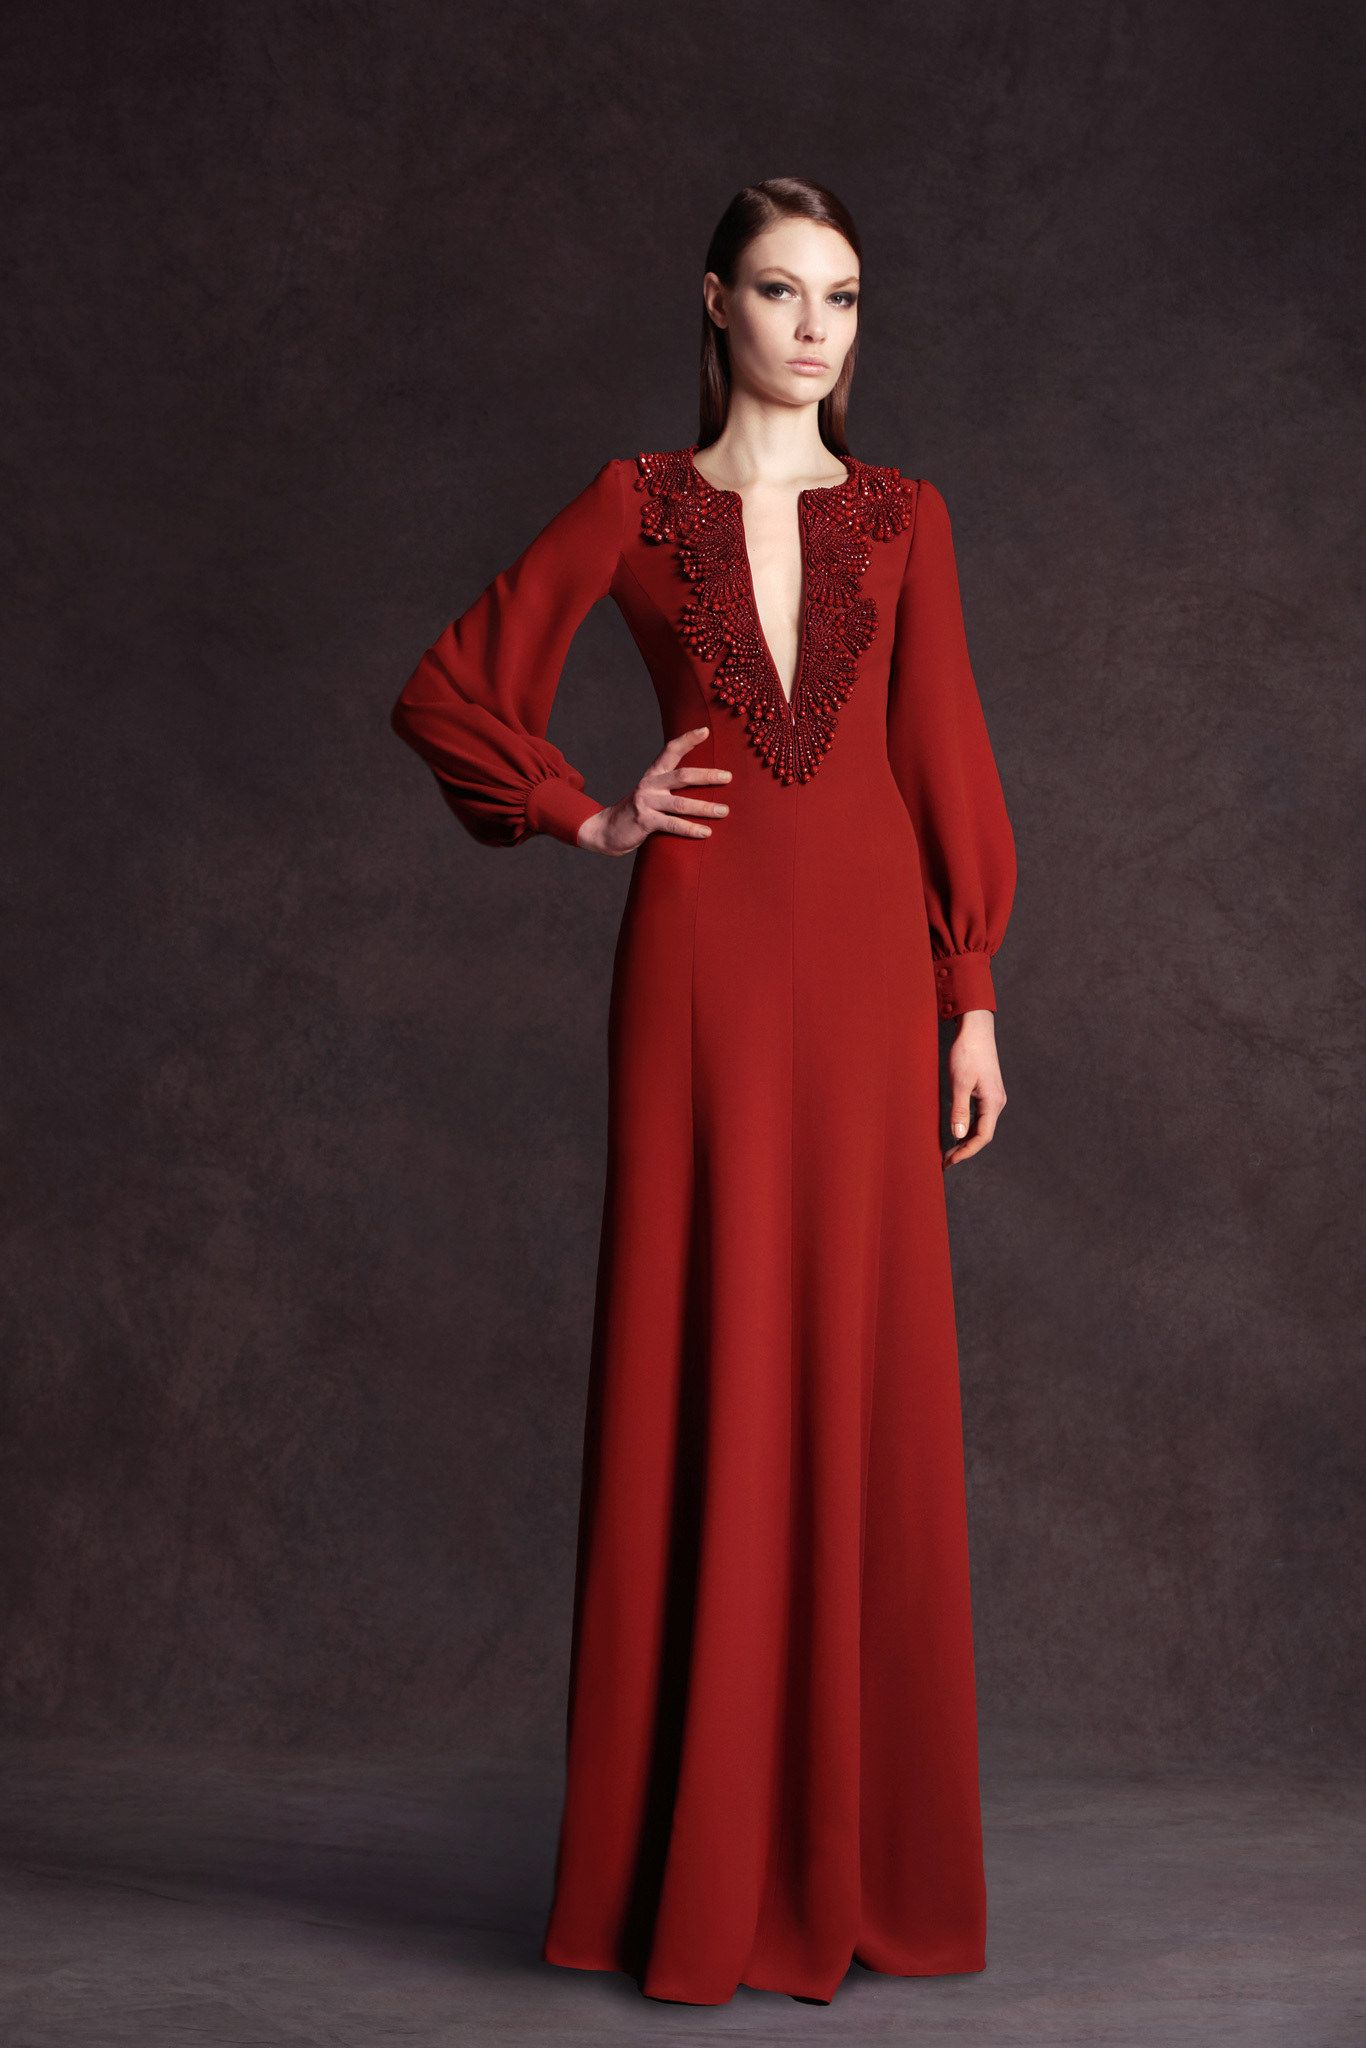 Andrew gn prefall fashion show fashion vogue and fall